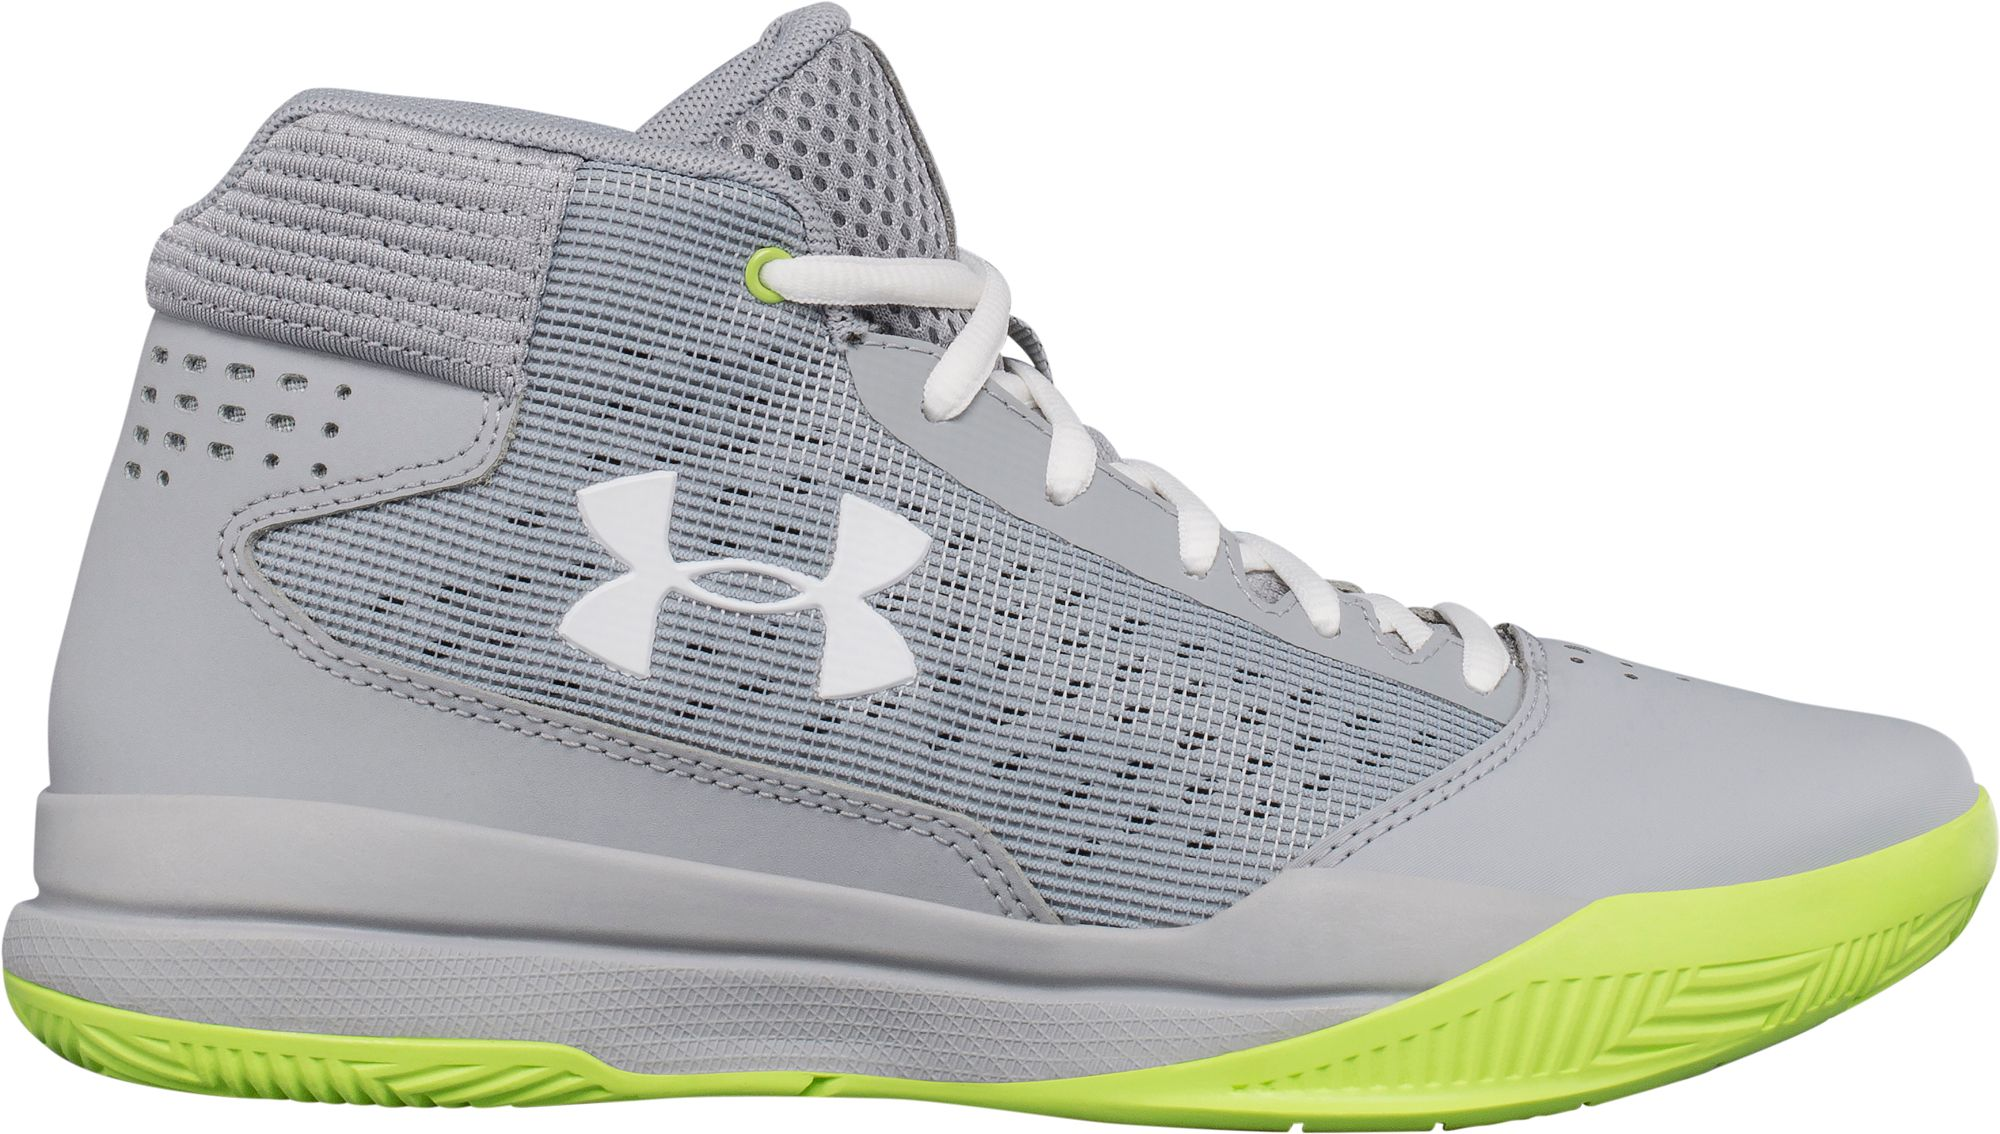 Under Armour Basketball Sko Kvinner SbLDwQVQo